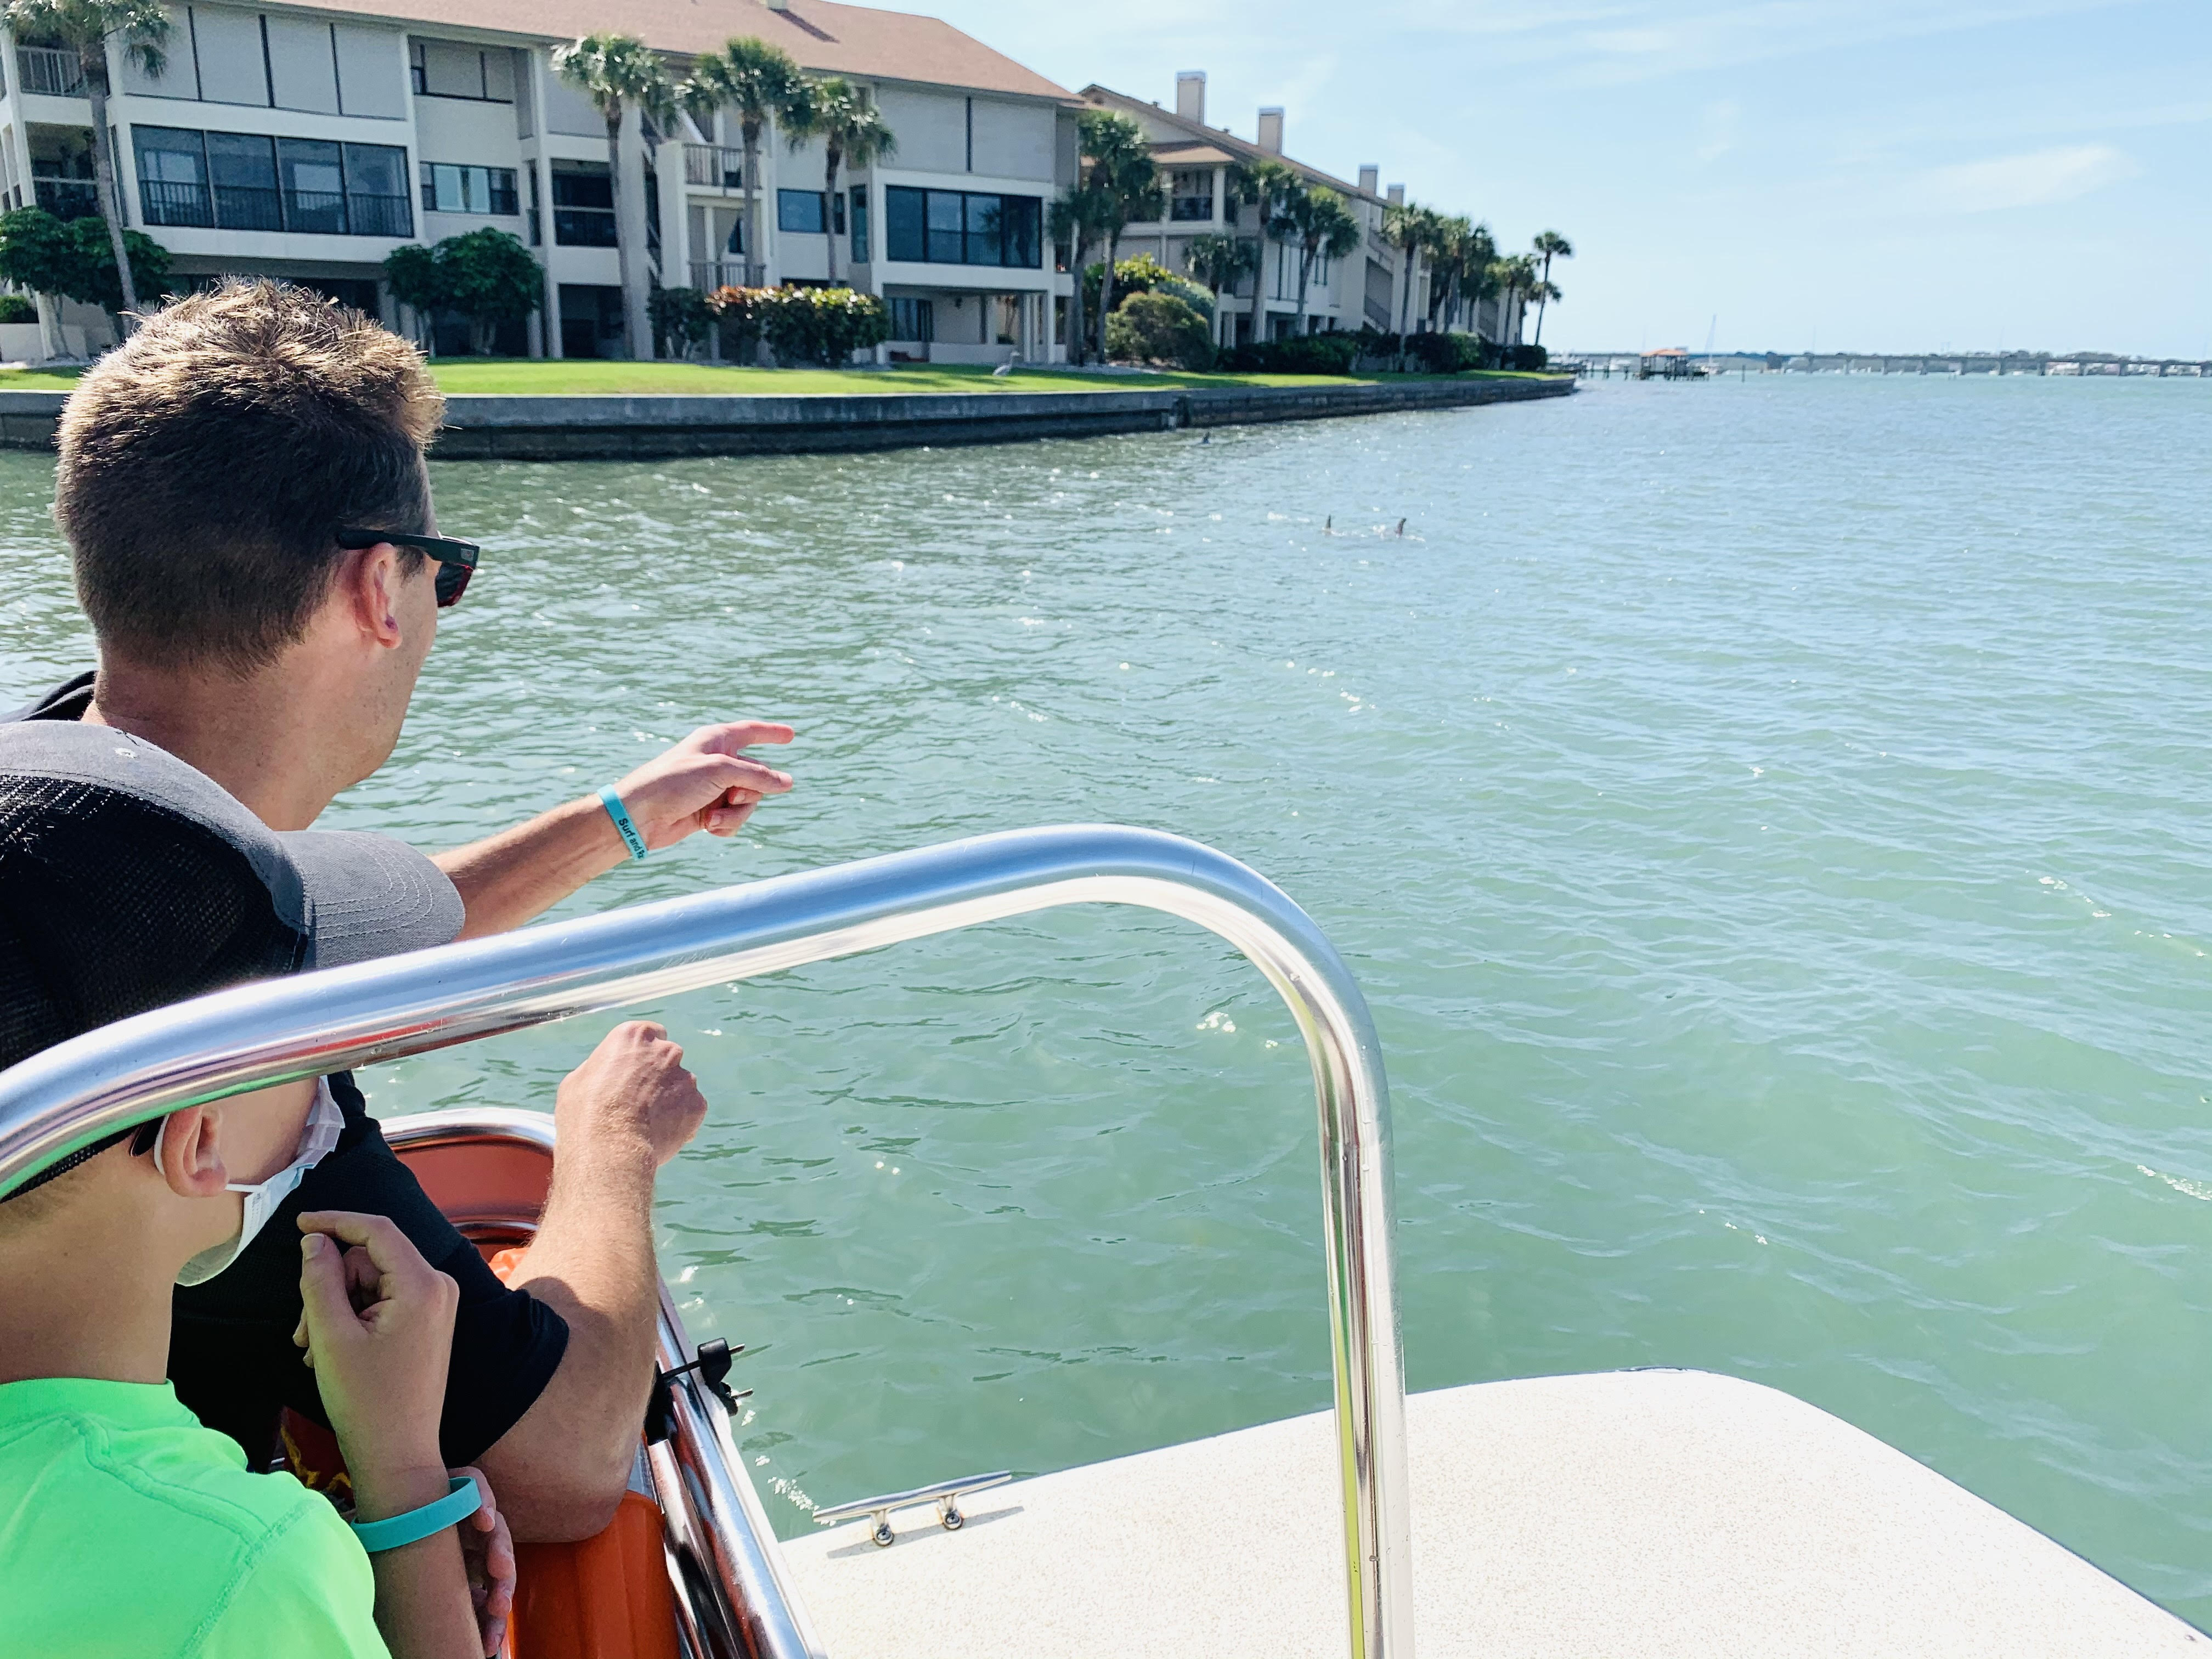 Dolphin Tour; Discover the best things to do on Anna Maria Island from Top US Family Travel Blog, Travel With A Plan!